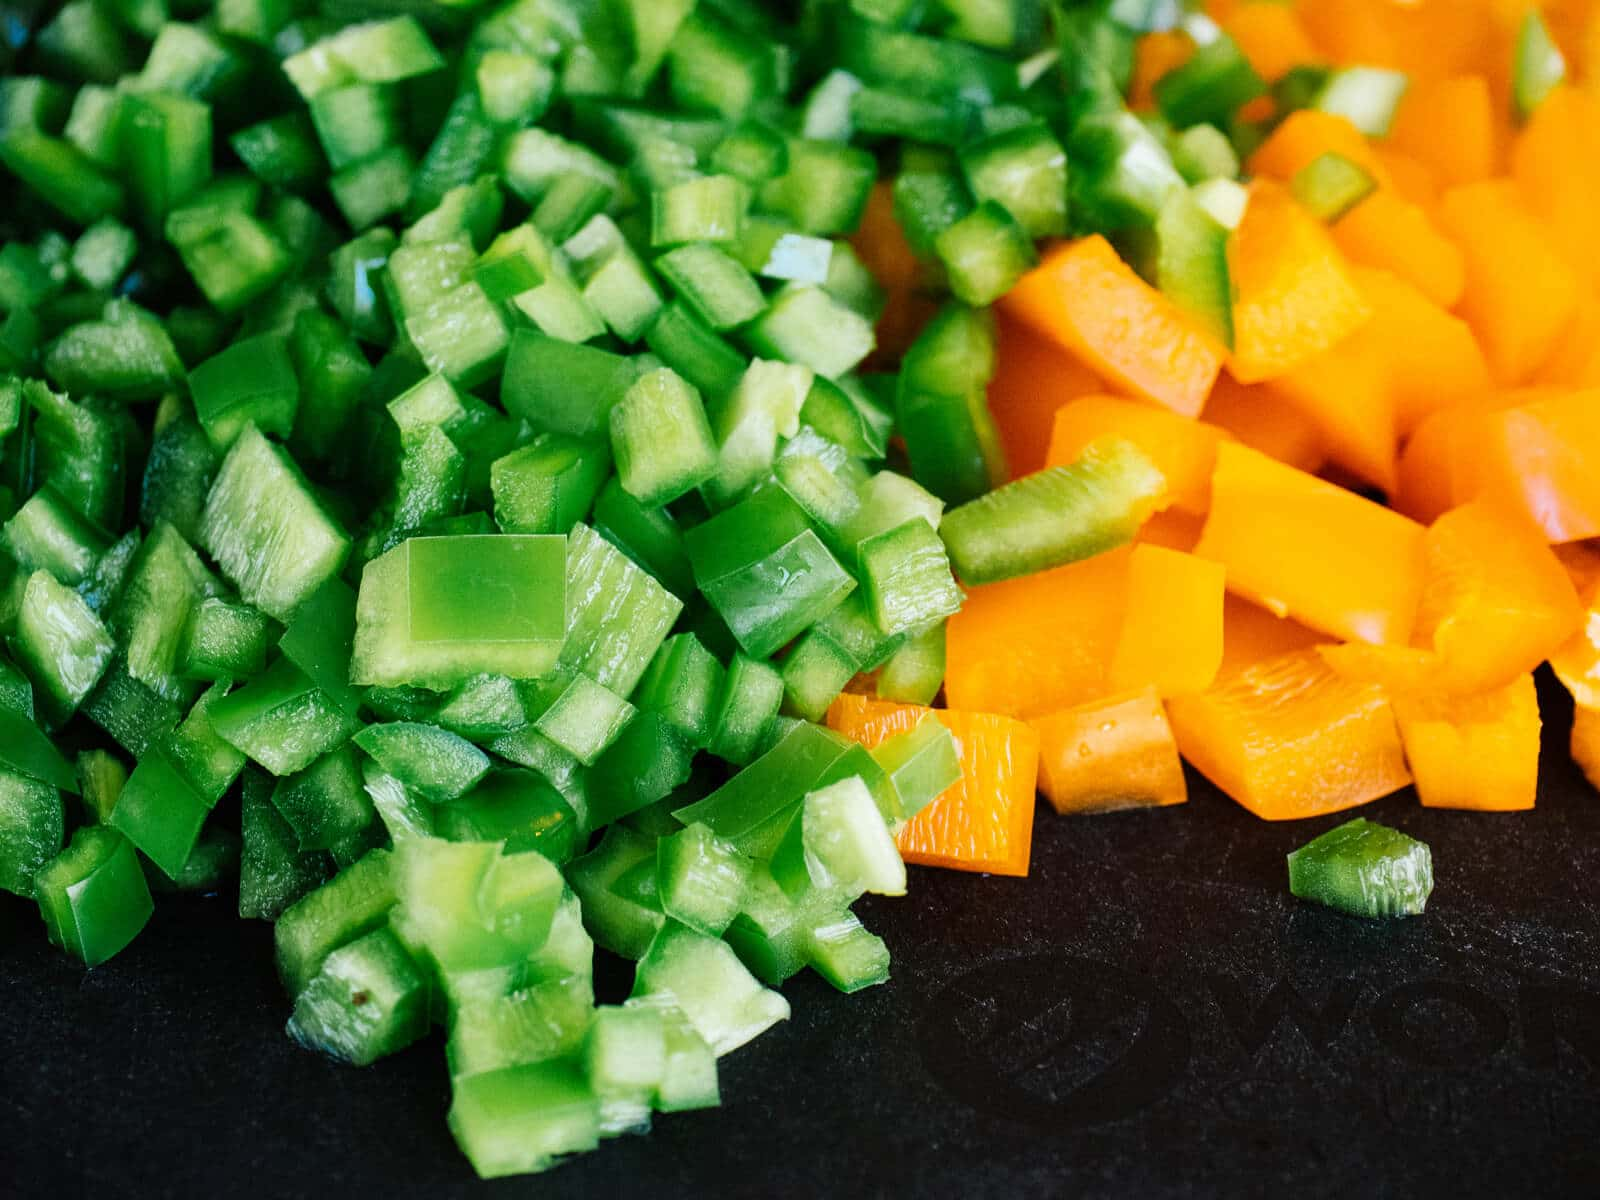 Chopped hot and mild peppers